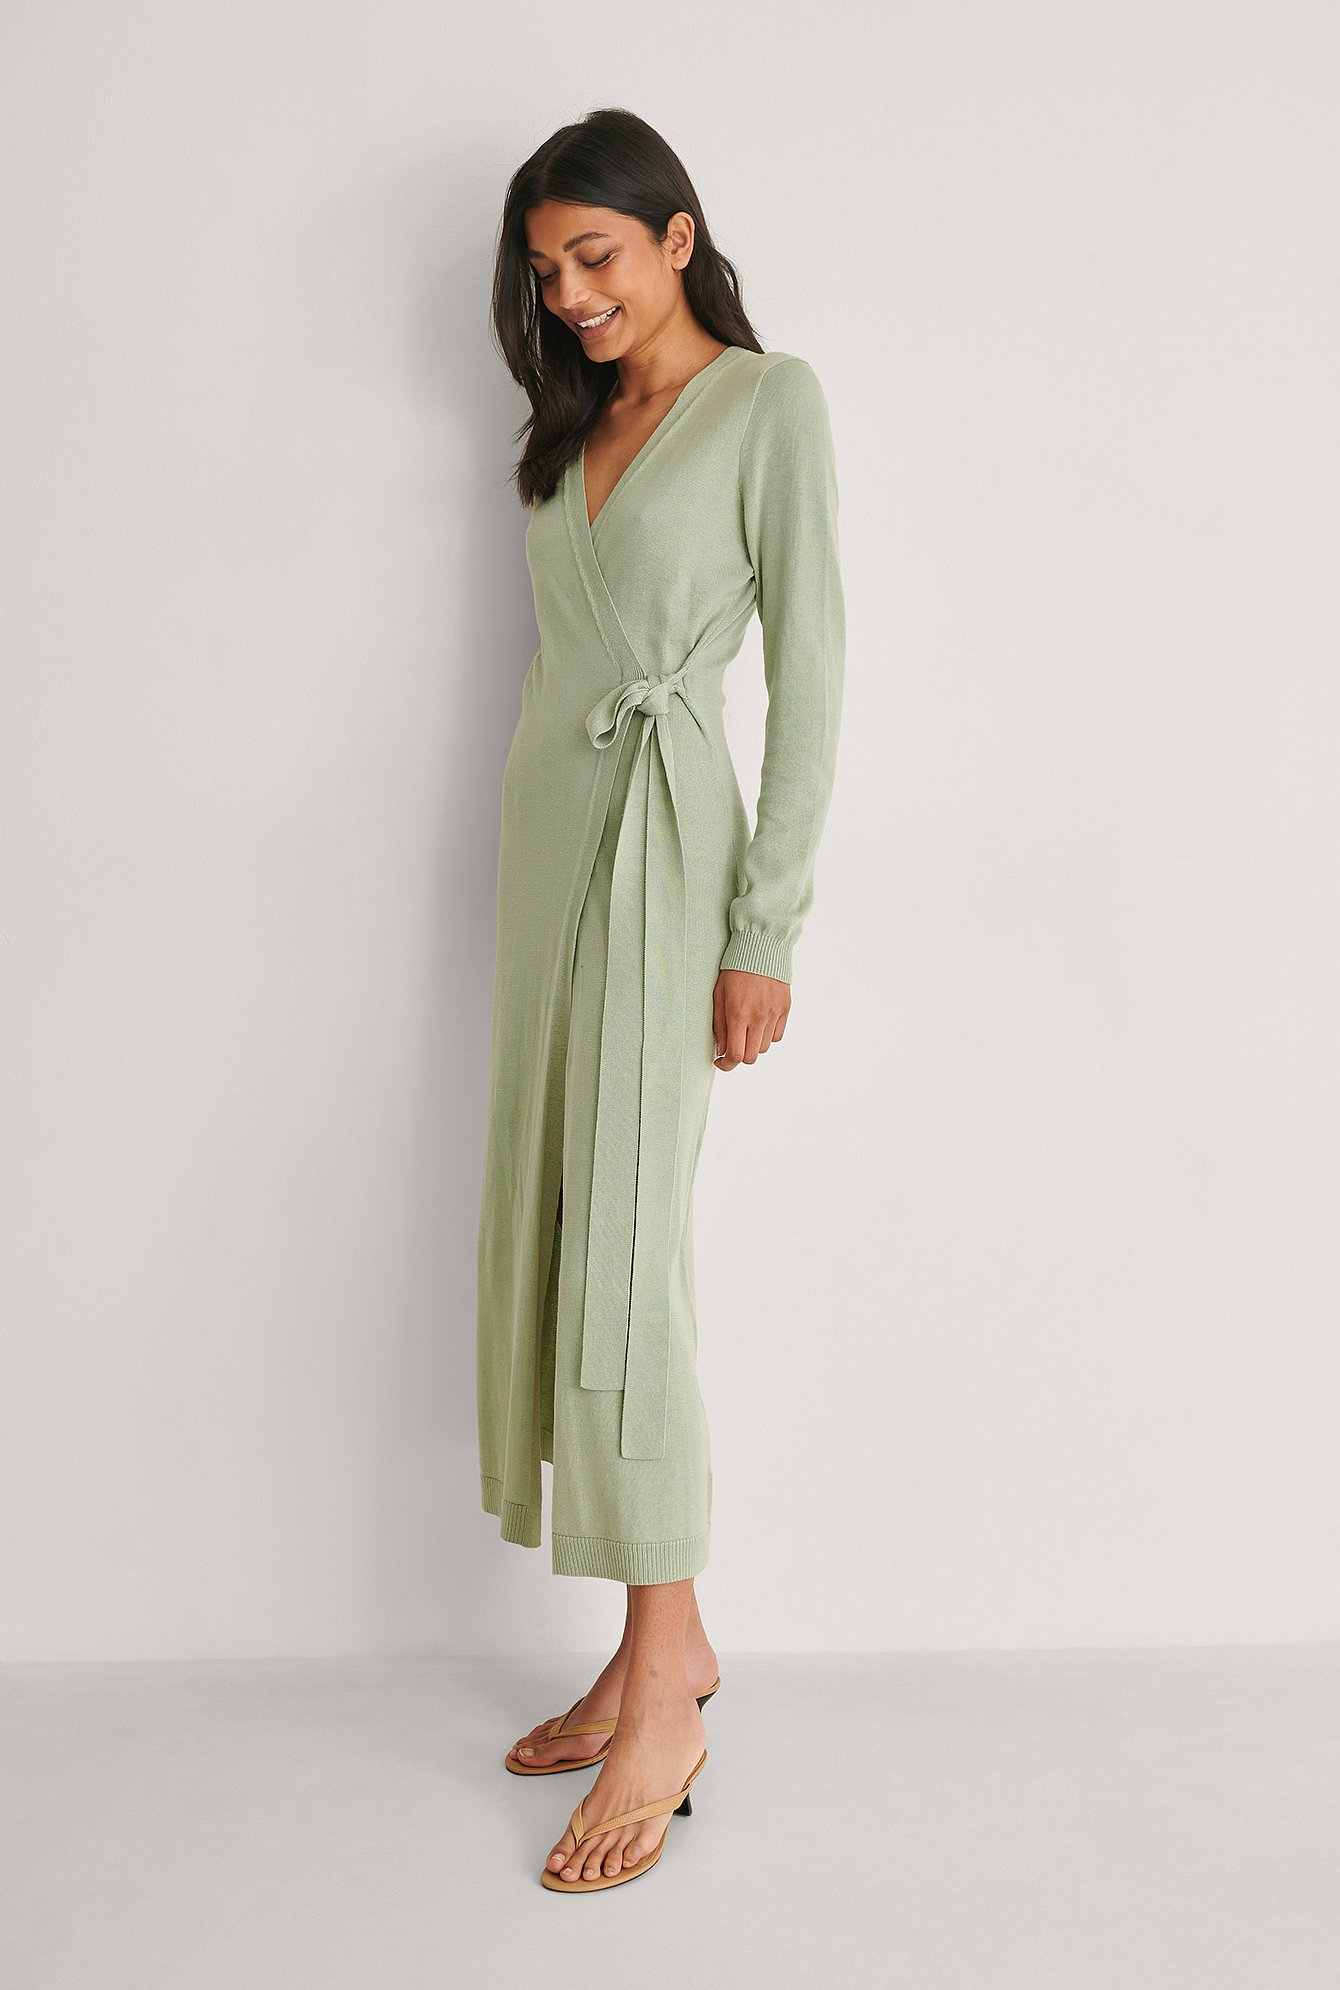 Green Knitted Robe Dress